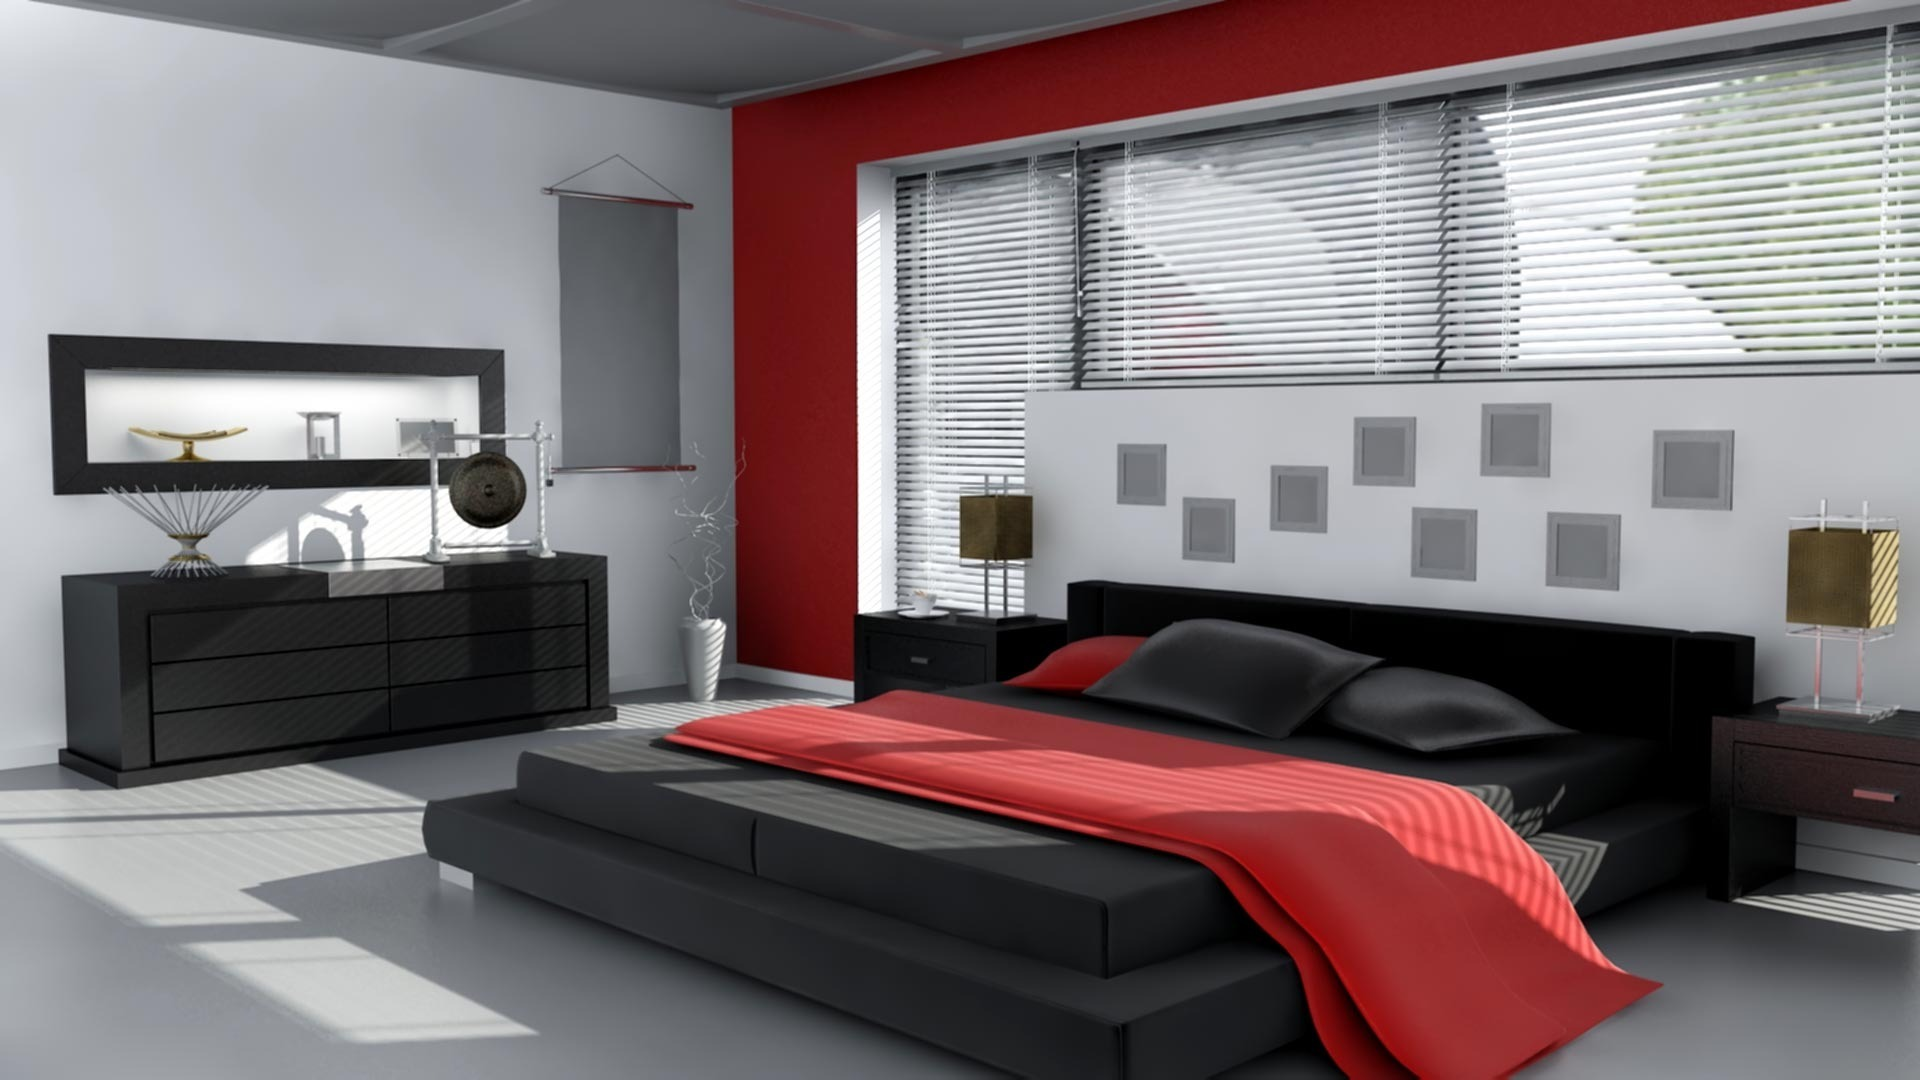 Red Bedroom 58 Photos Interior Design In Red White And Red Black Colors With Blue Accents